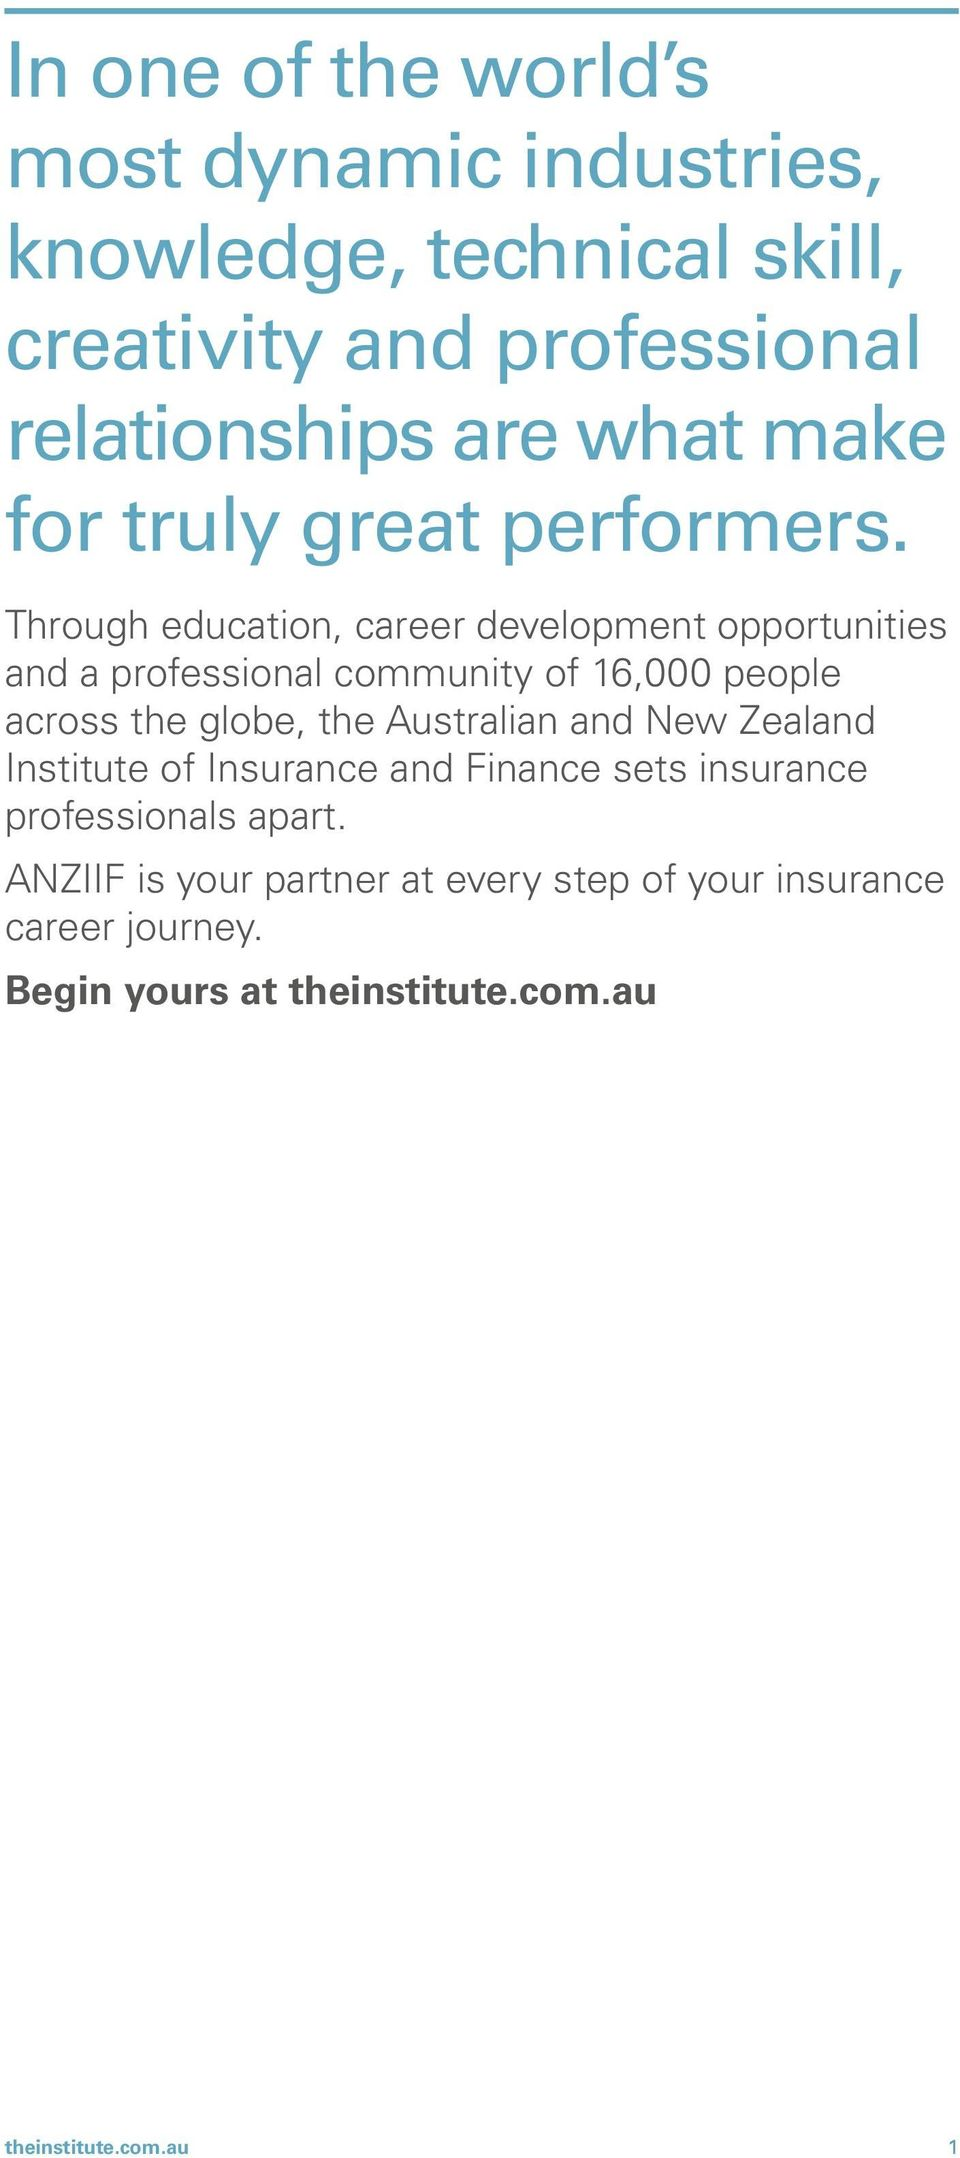 Through education, career development opportunities and a professional community of 16,000 people across the globe, the